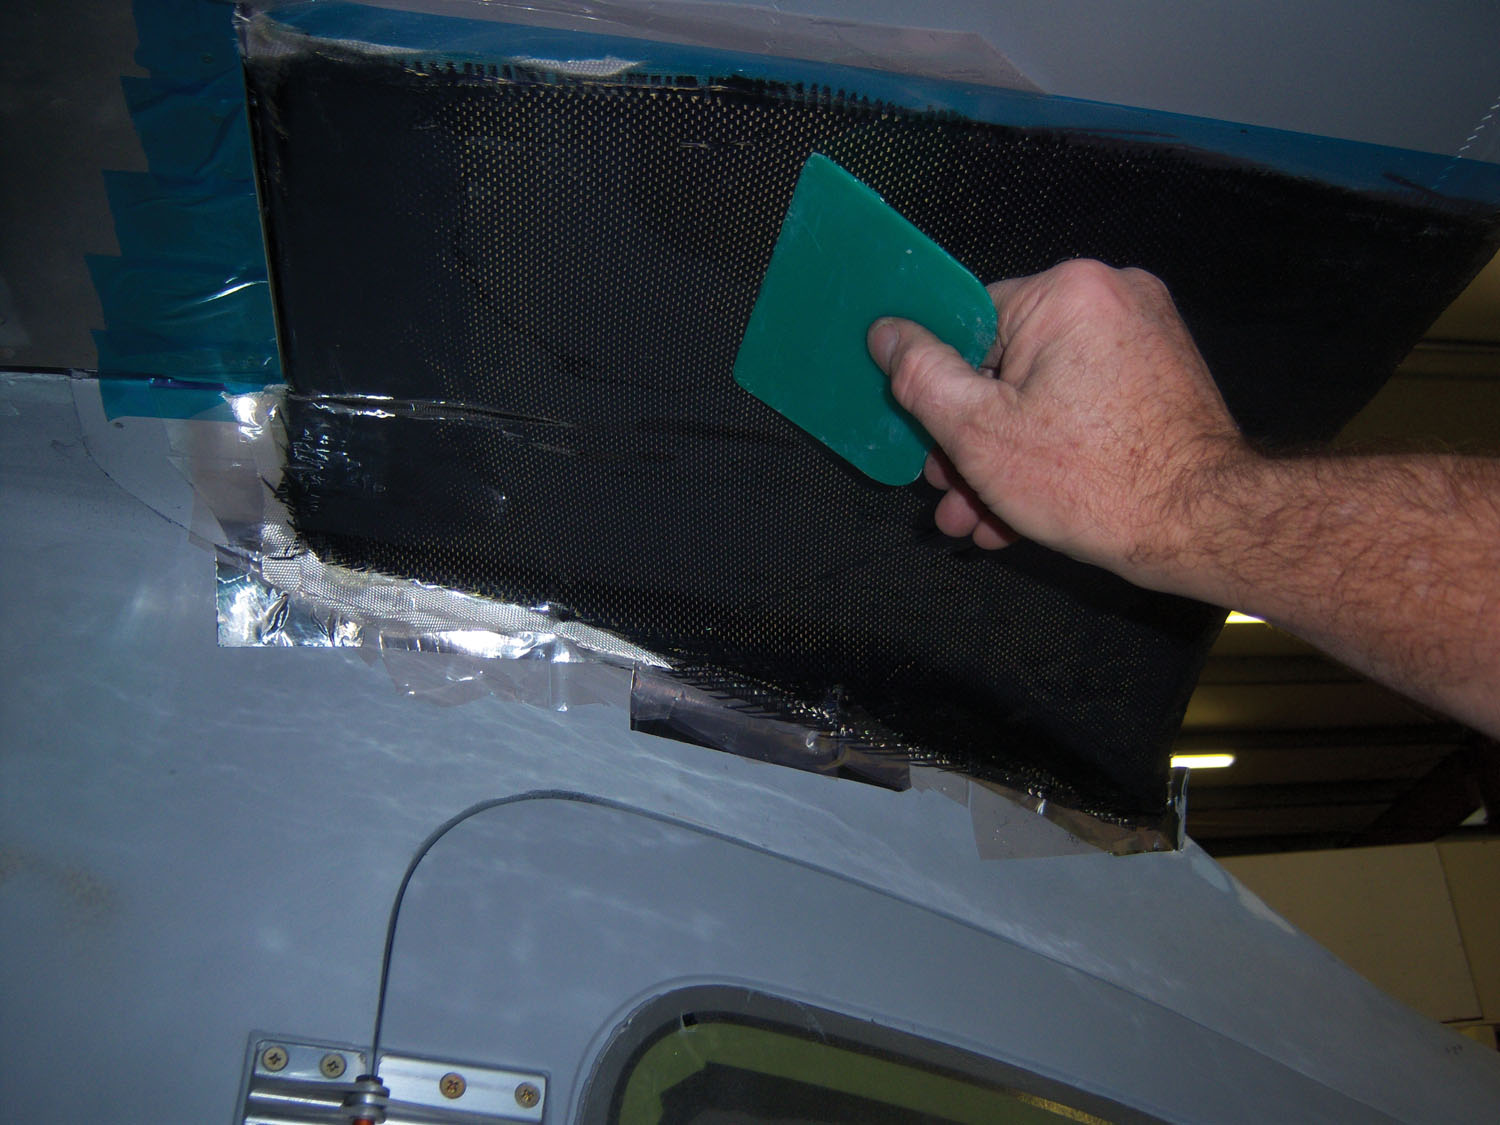 Using a squeegee to get any air bubbles and wrinkles out of the laminate The bagging film seals the laminate and keeps the whole process from getting messy.